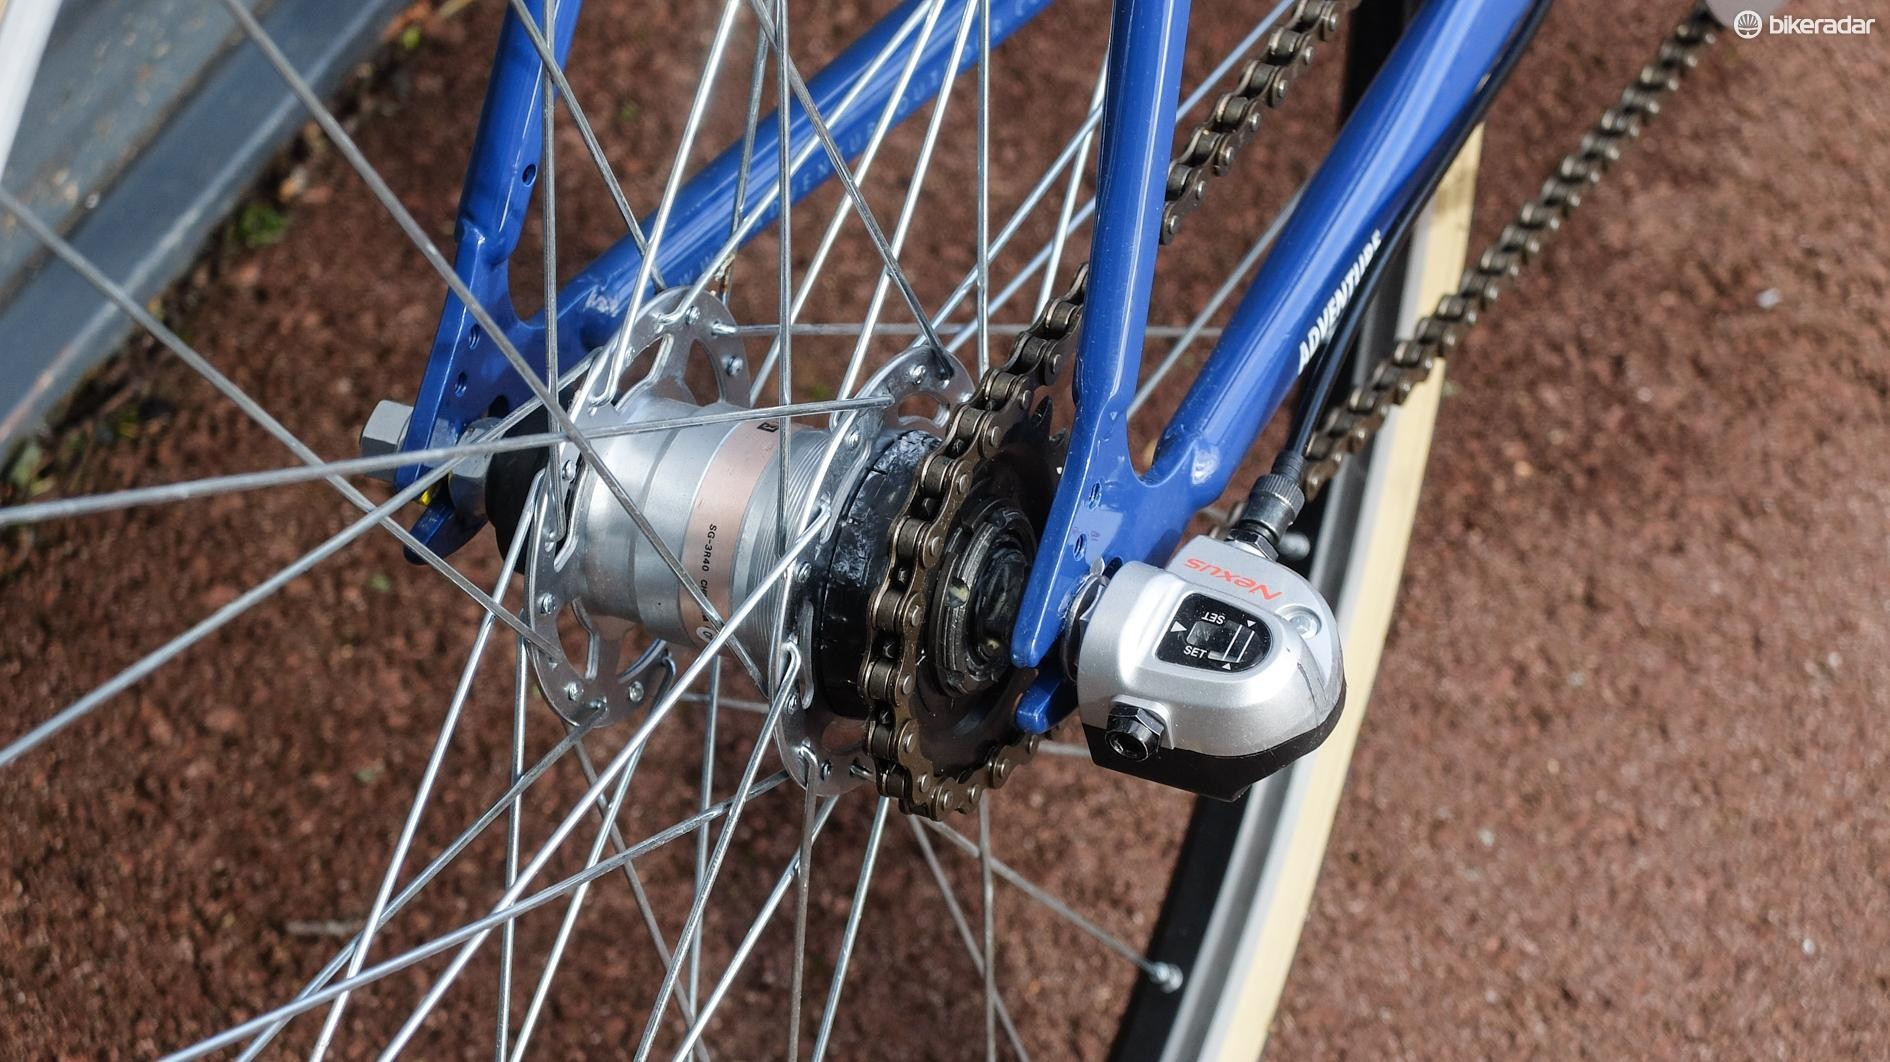 The bike is built around a three-speed Nexus hub